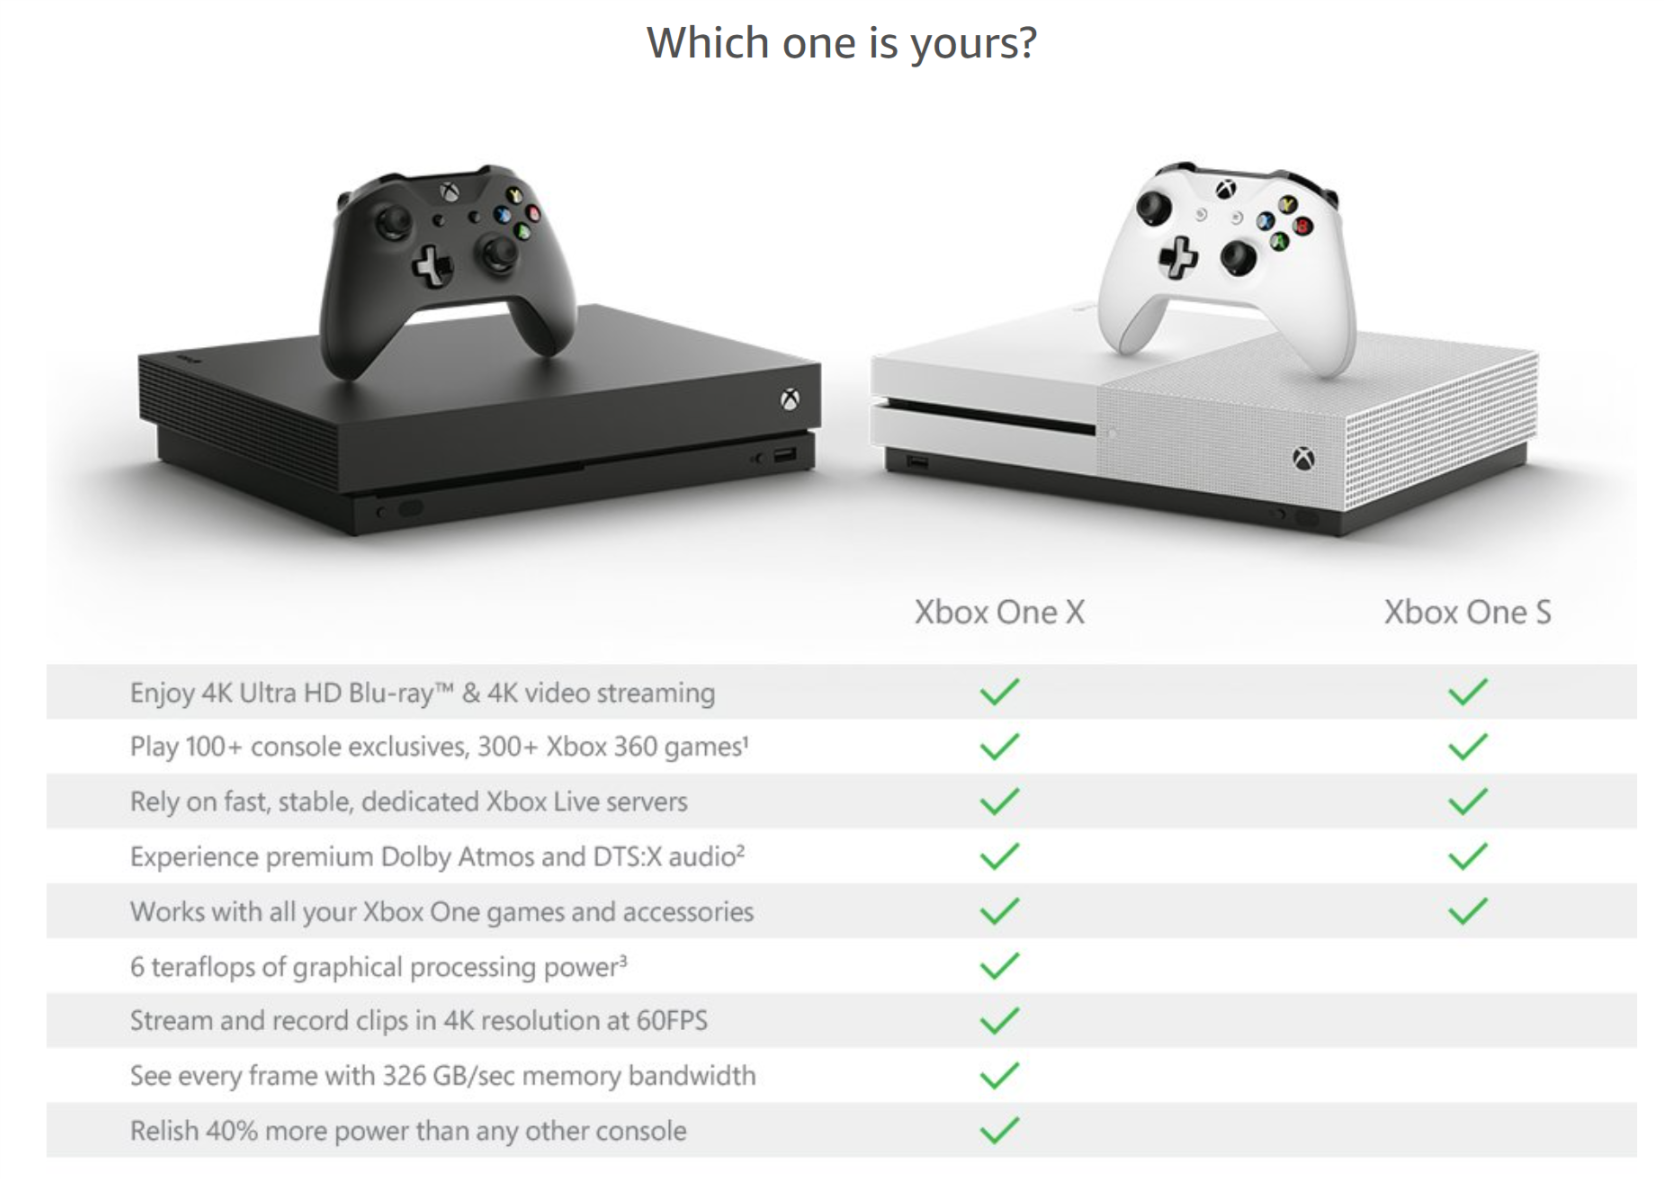 Xbox One X S Marketing Is Still Deceiving Consumers About Support For Kinect Xbox One Kinect Xbox